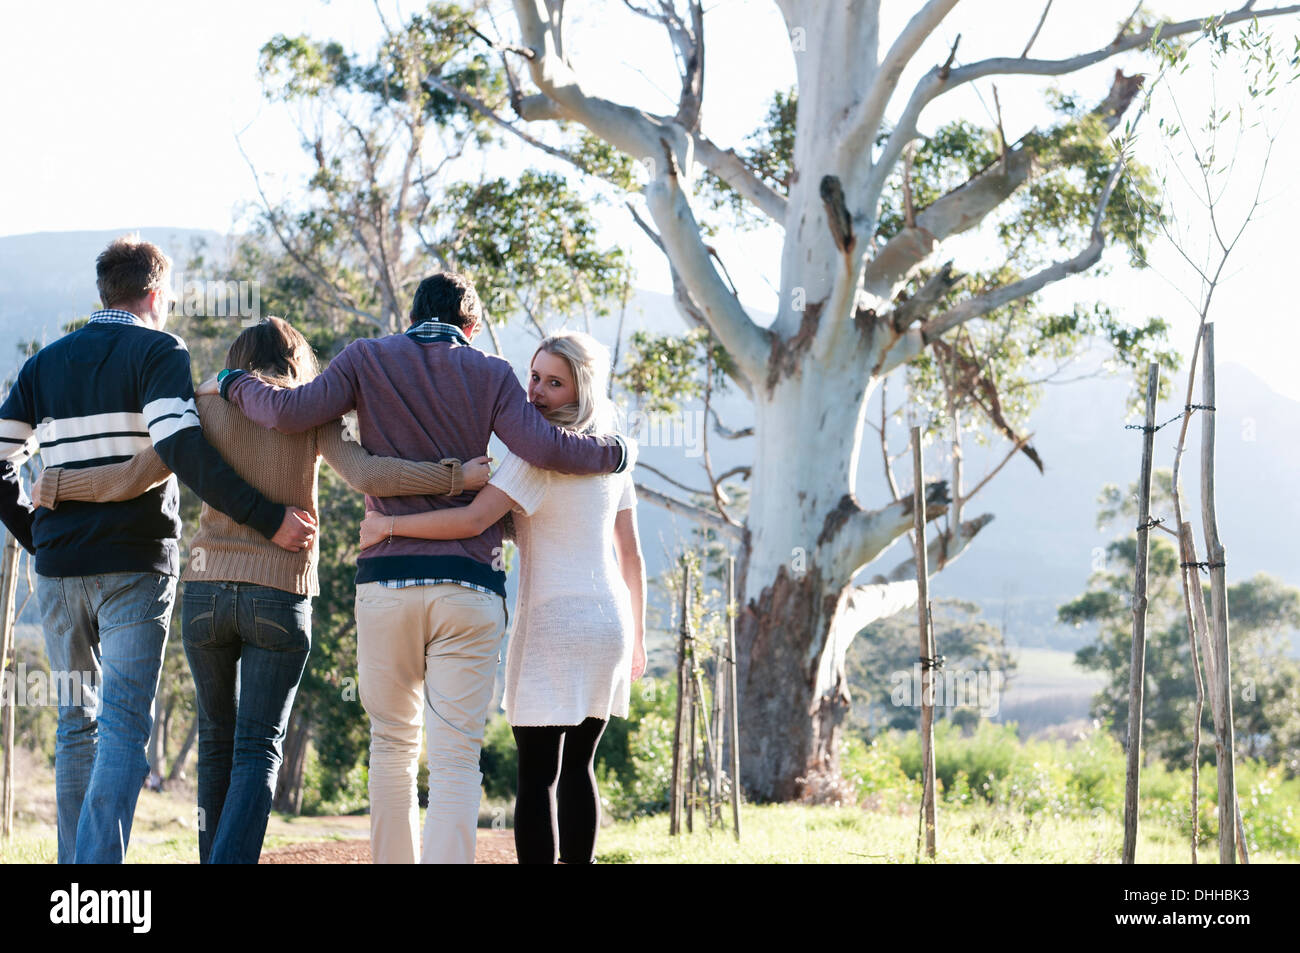 Friends walking through countryside with arms around - Stock Image